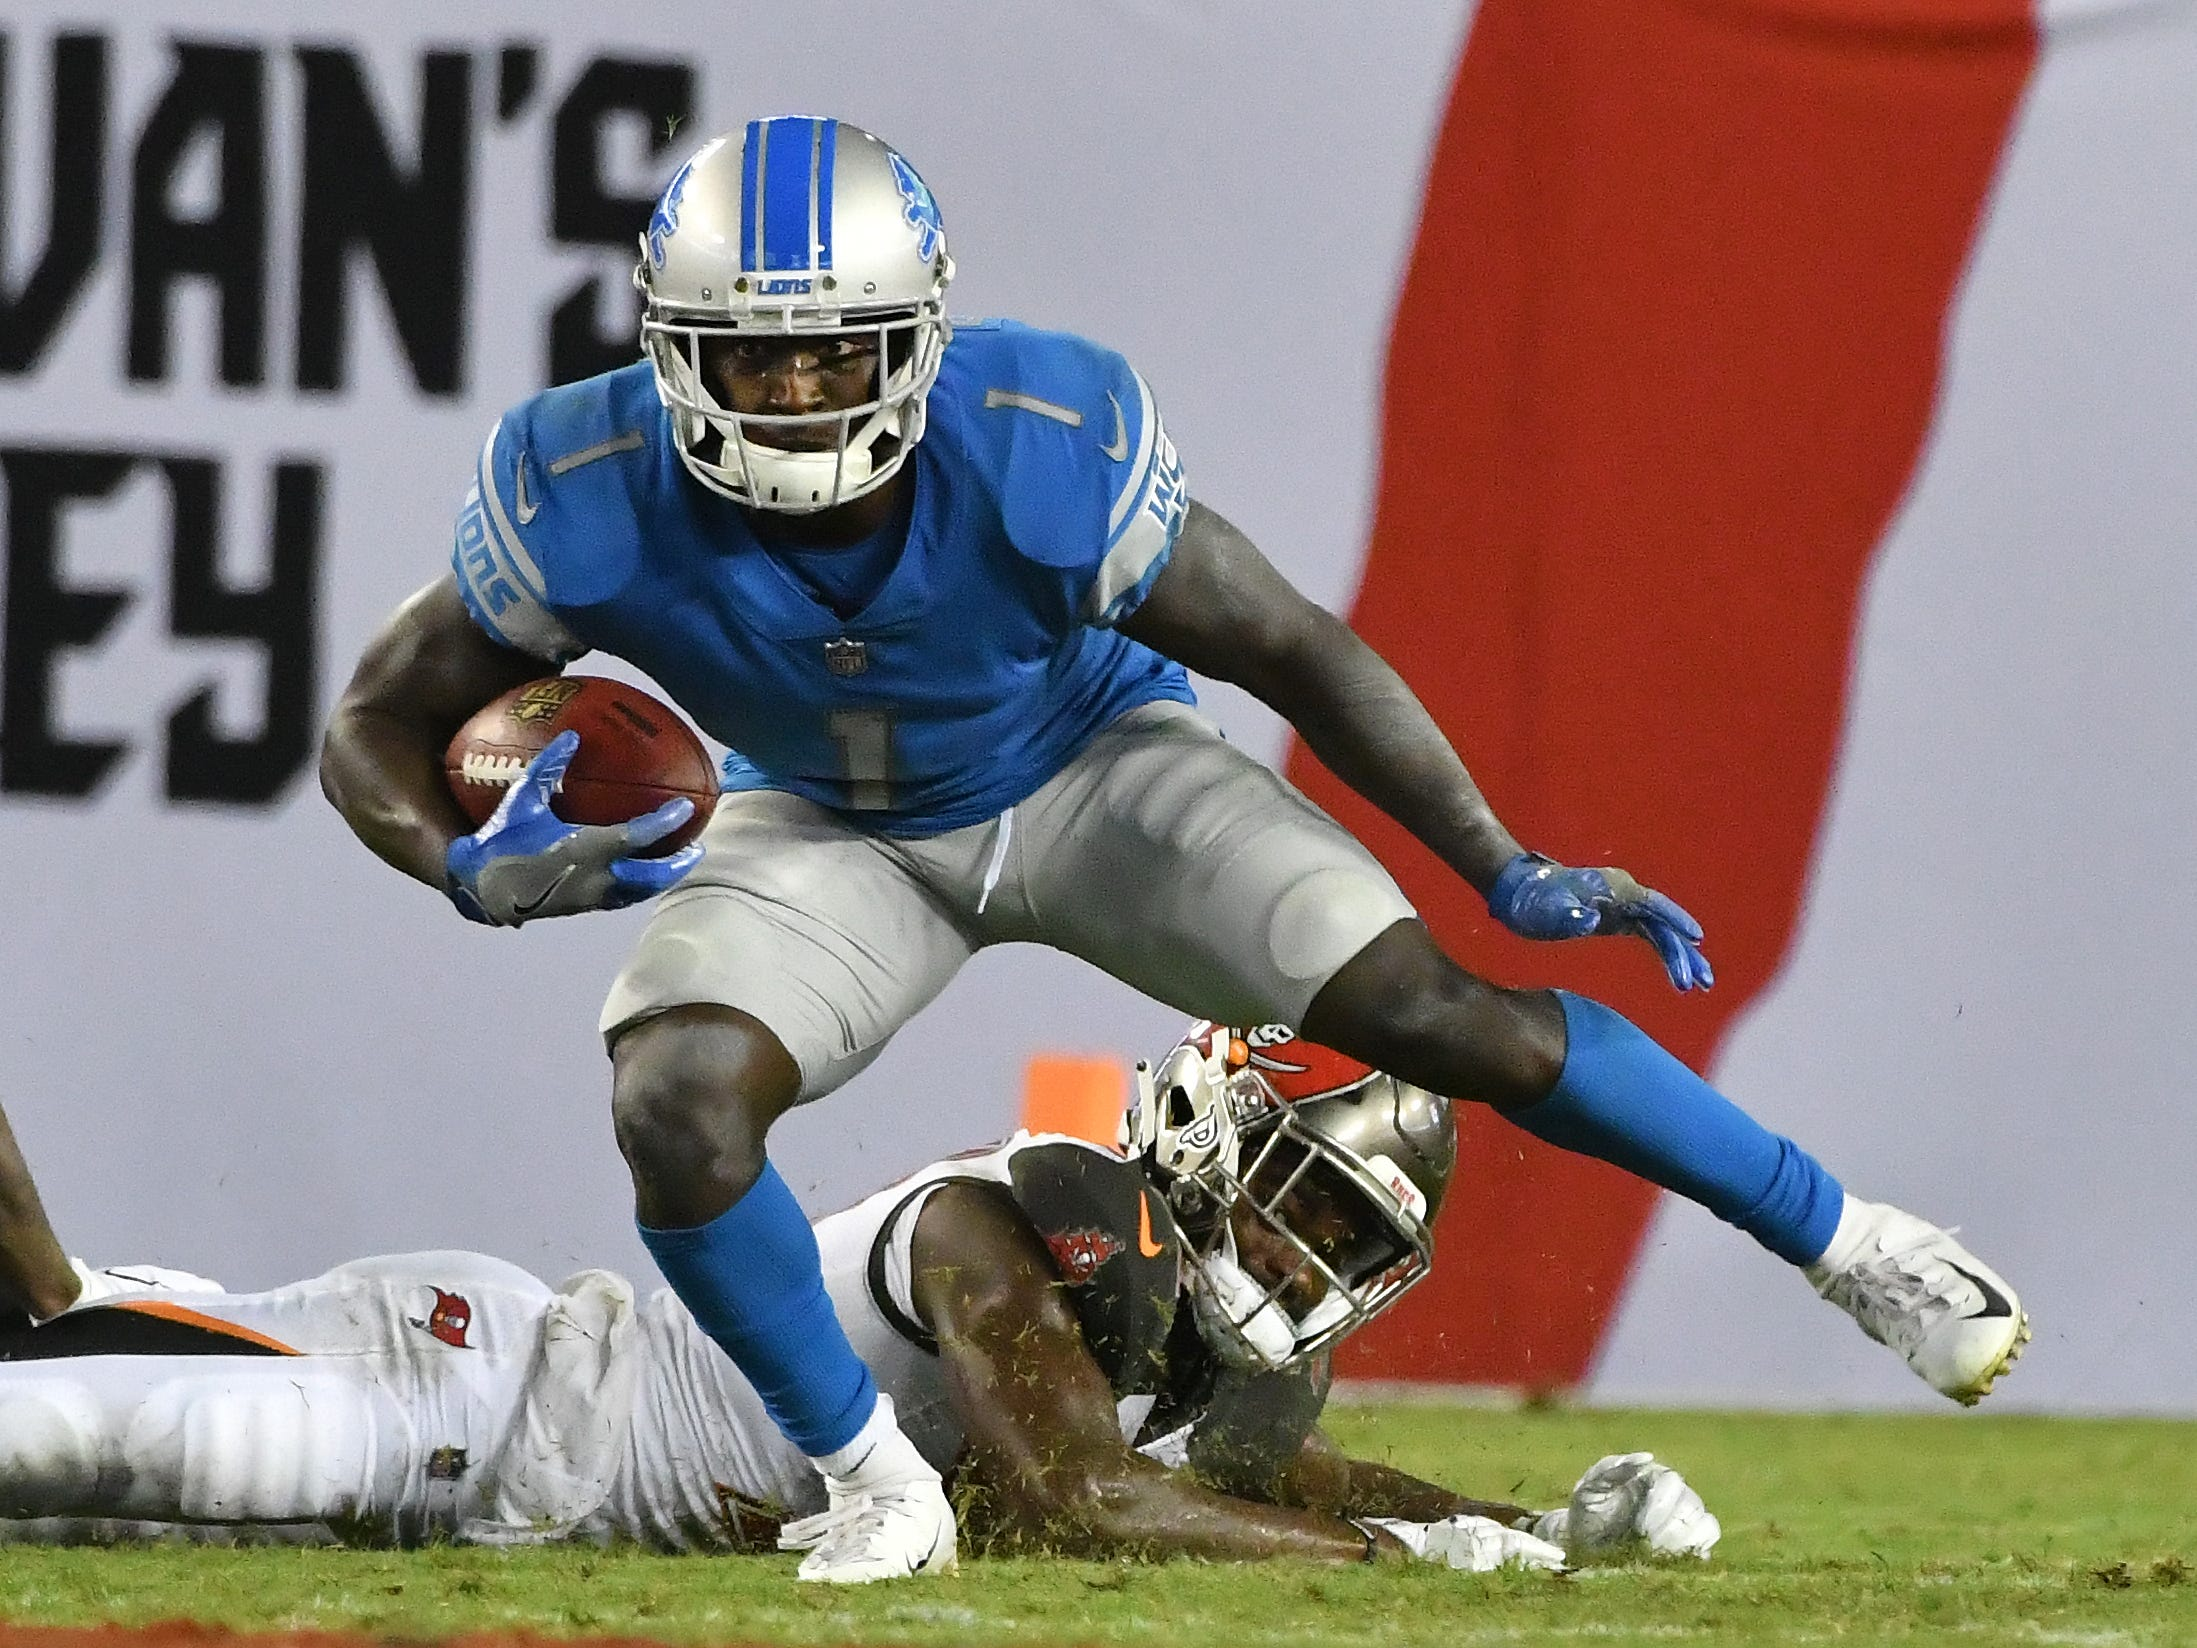 Lions' Brandon Powell breaks a tackle heading up field in the third quarter.